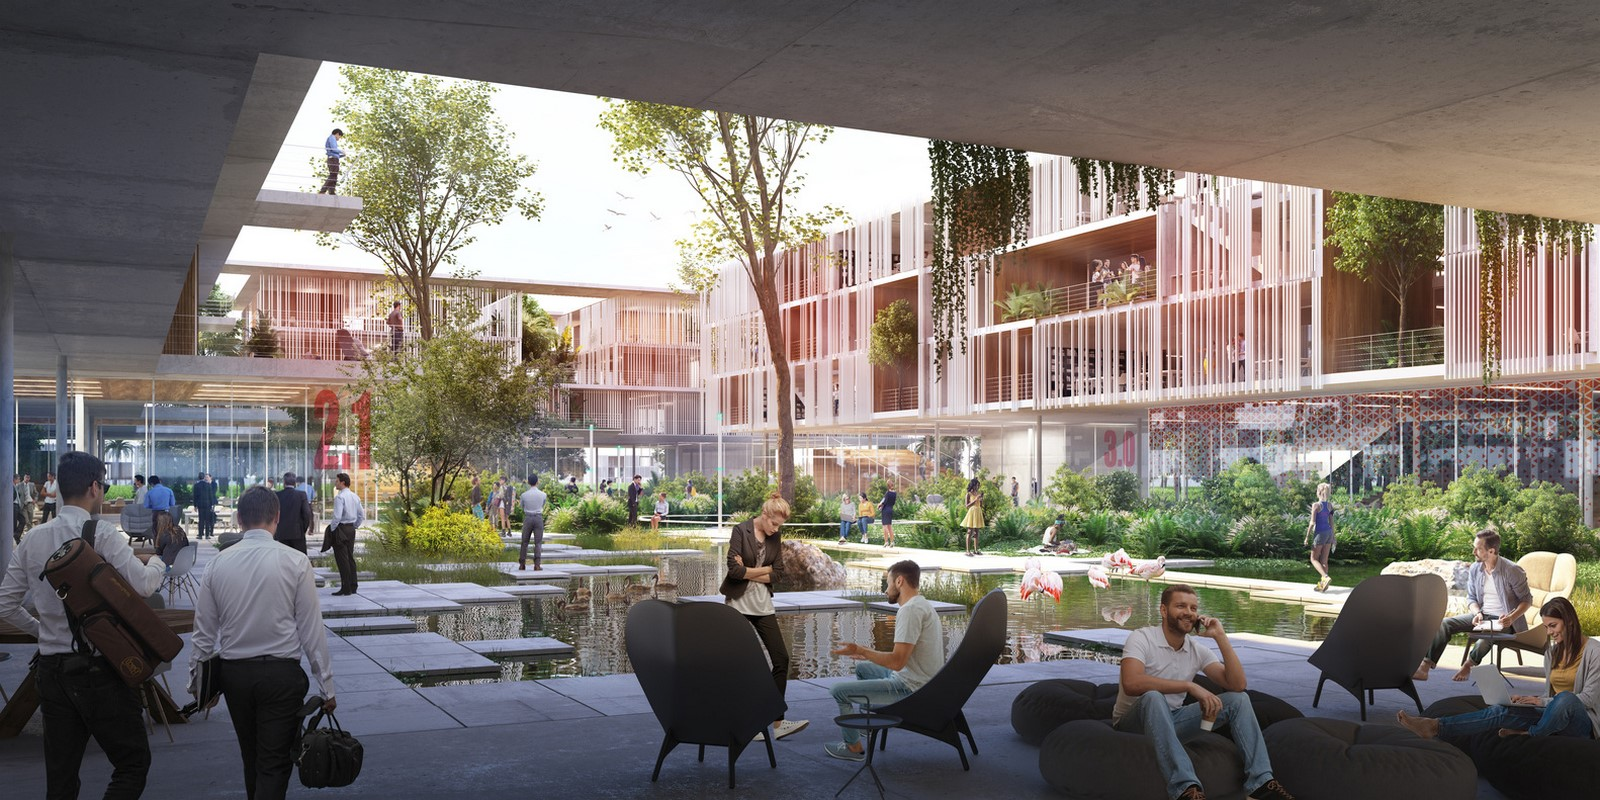 'BIOTIC' technology and innovation district for Brasilia revealed by Carlo Ratti - Sheet5